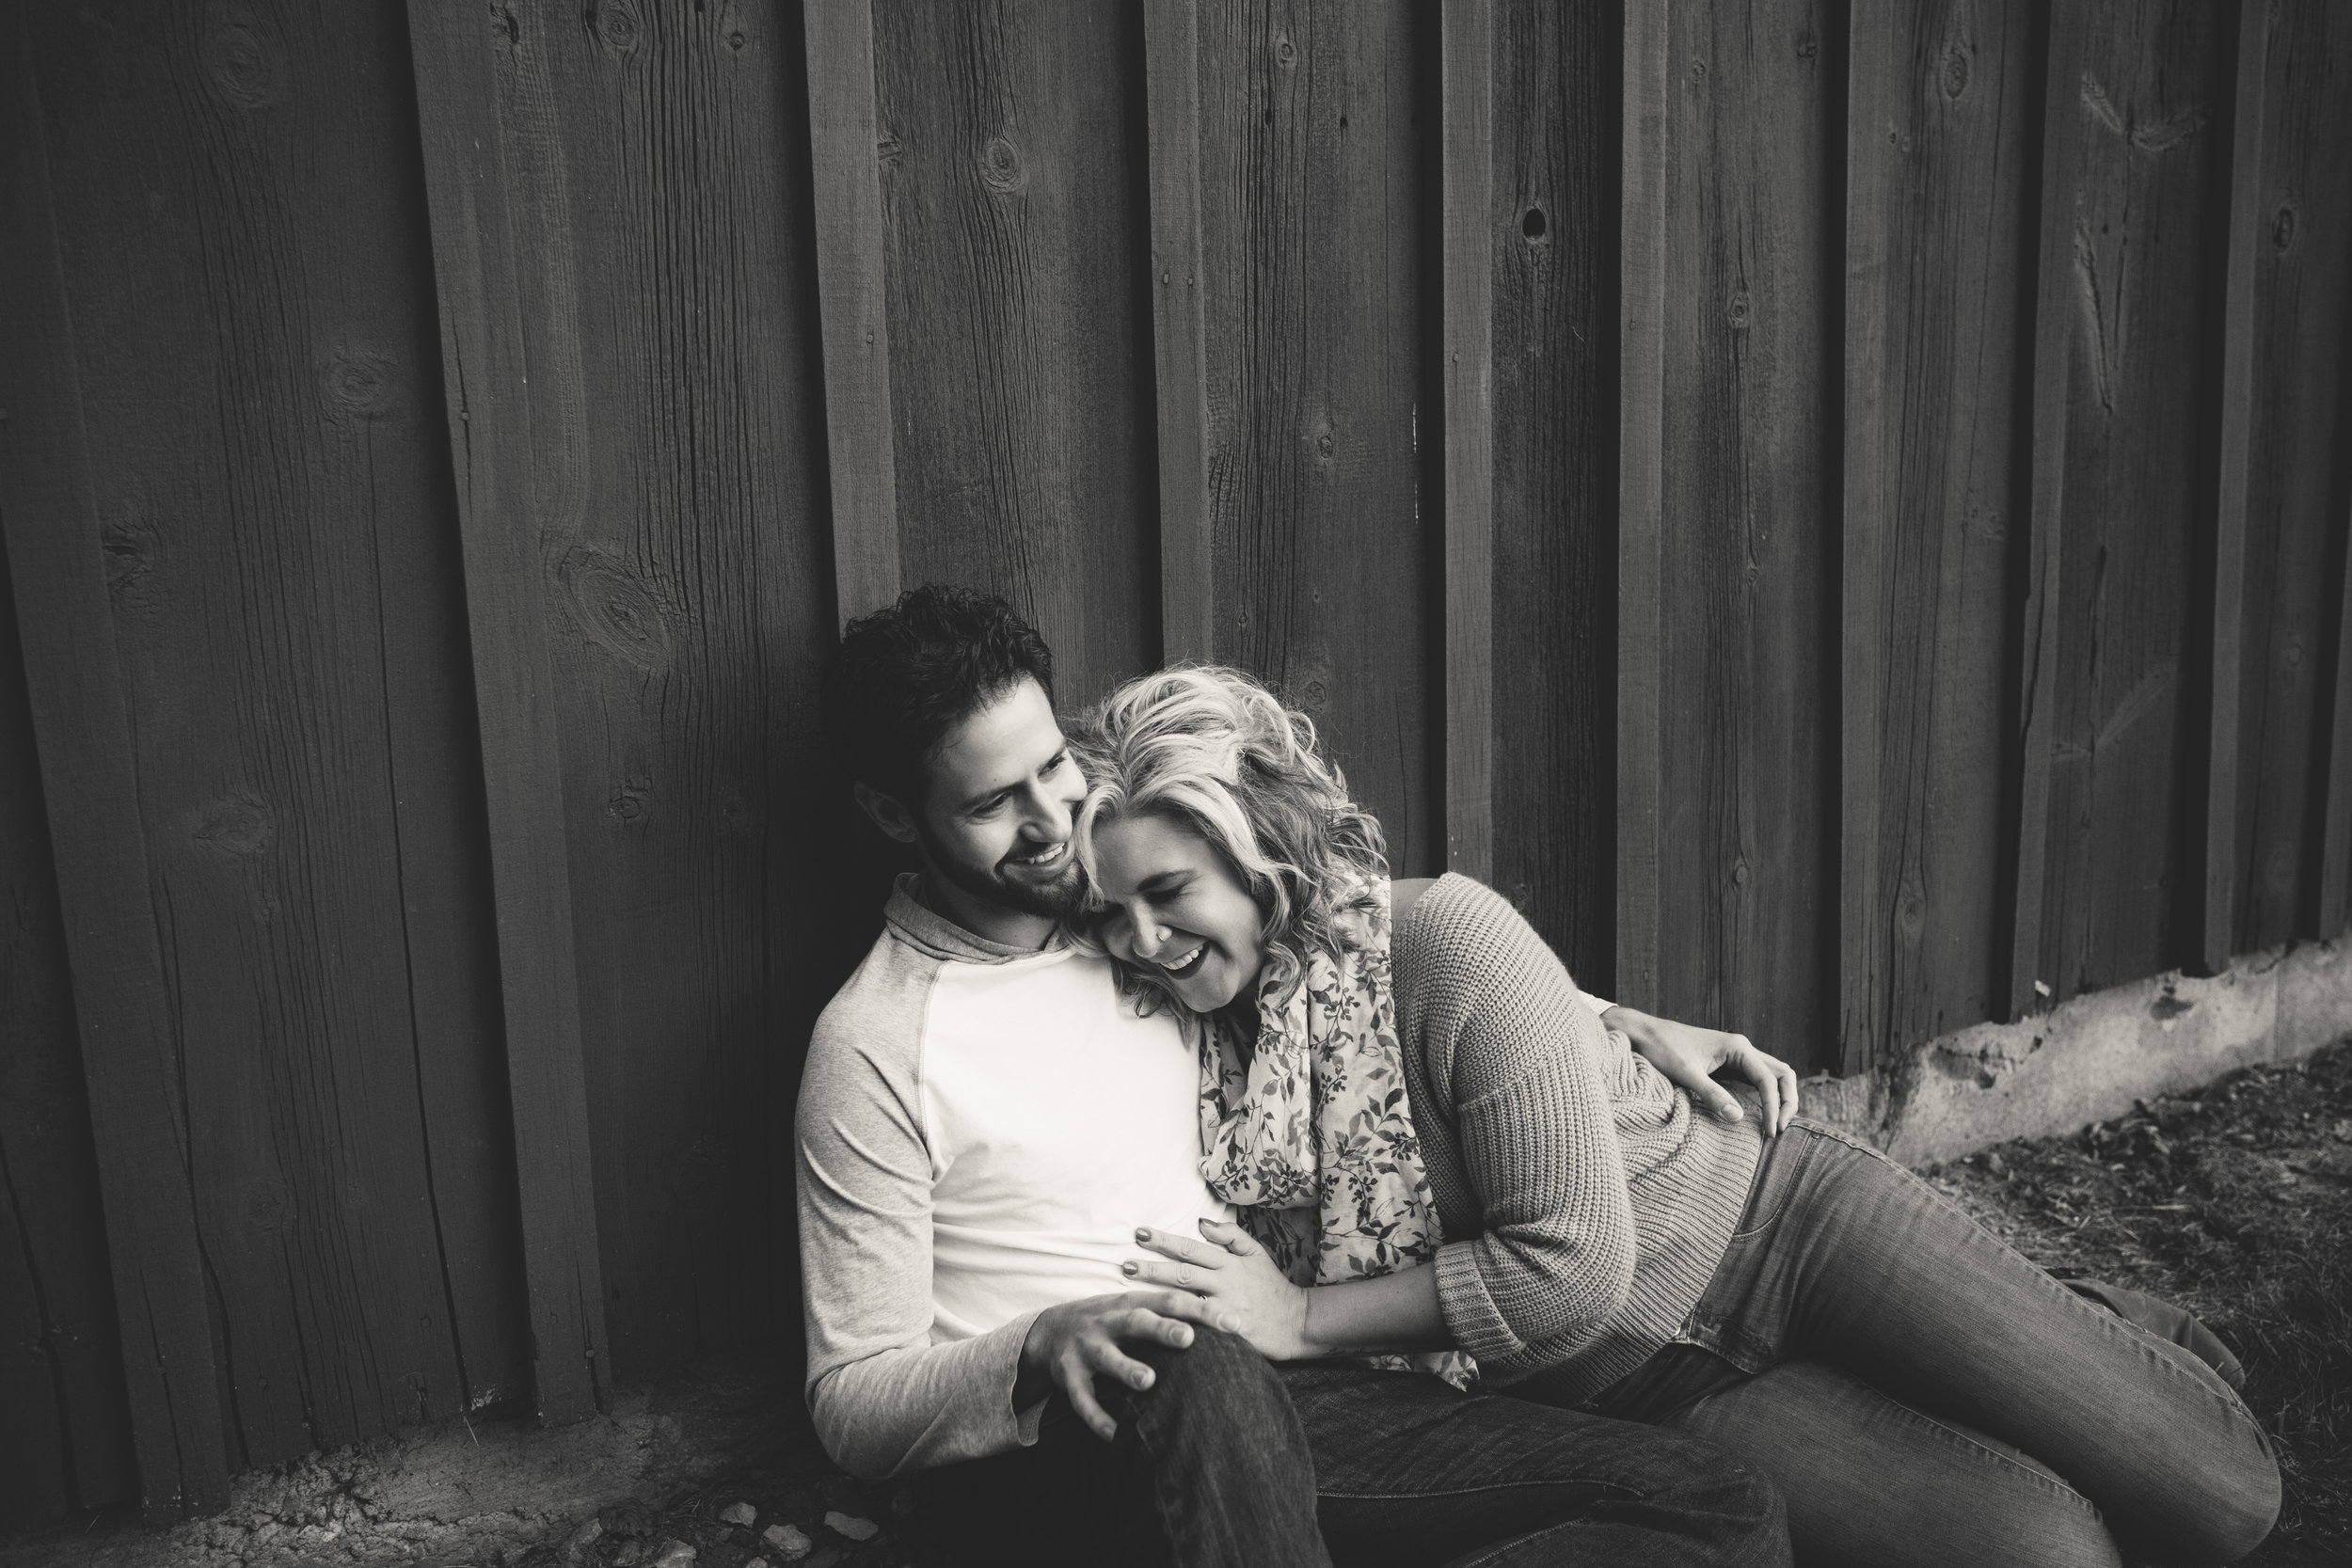 charltonpark_engagementsession_grandrapidsphotographer_grandrapids_hastings_michiganwedding_fallengagement_fallwedding_jdarlingphoto_jessicadarling_westmichiganphotographer_wedding_fall_rusticwedding  007.jpg